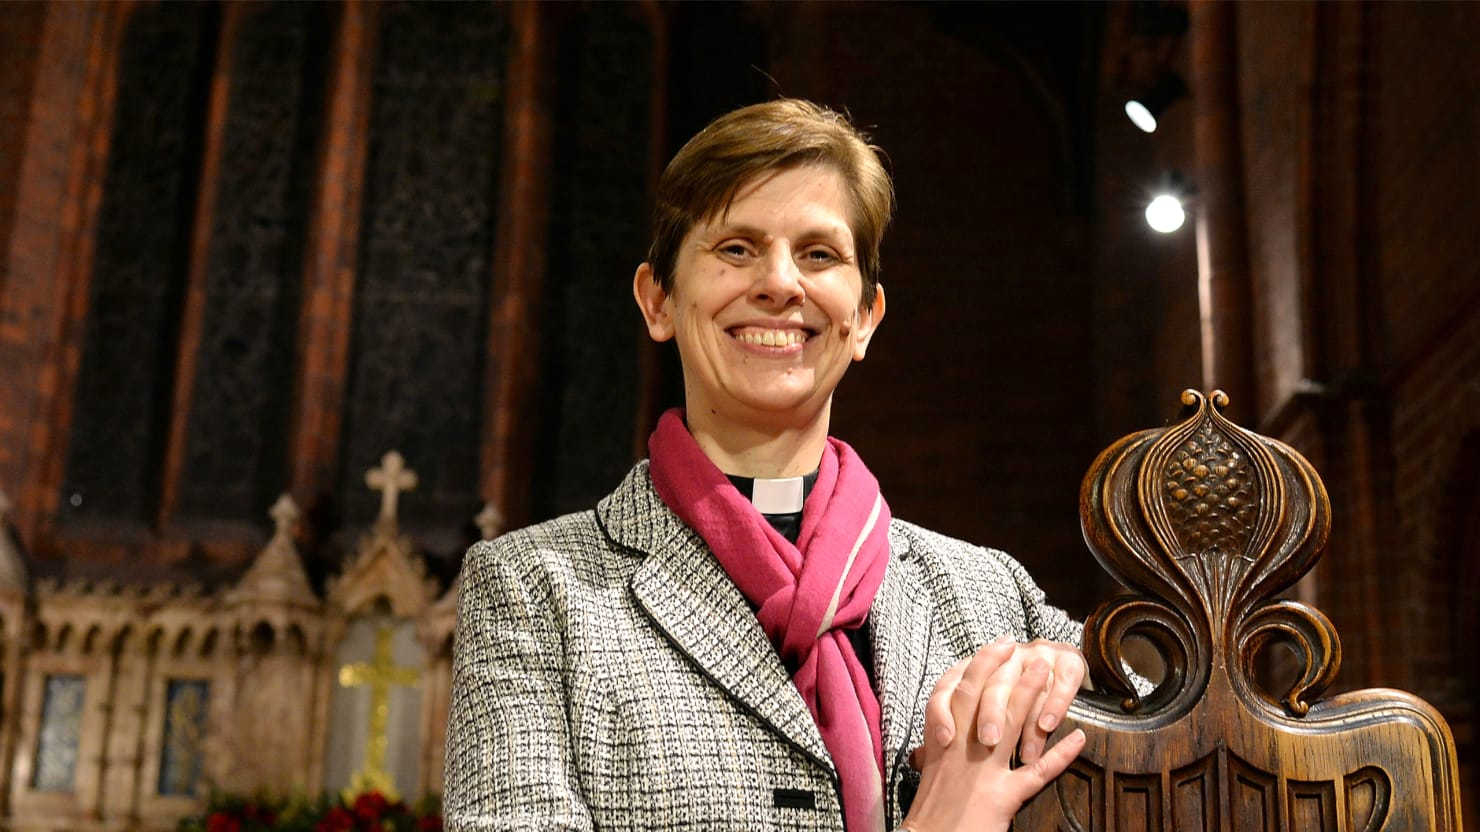 first anglican woman bishop a return to christian roots